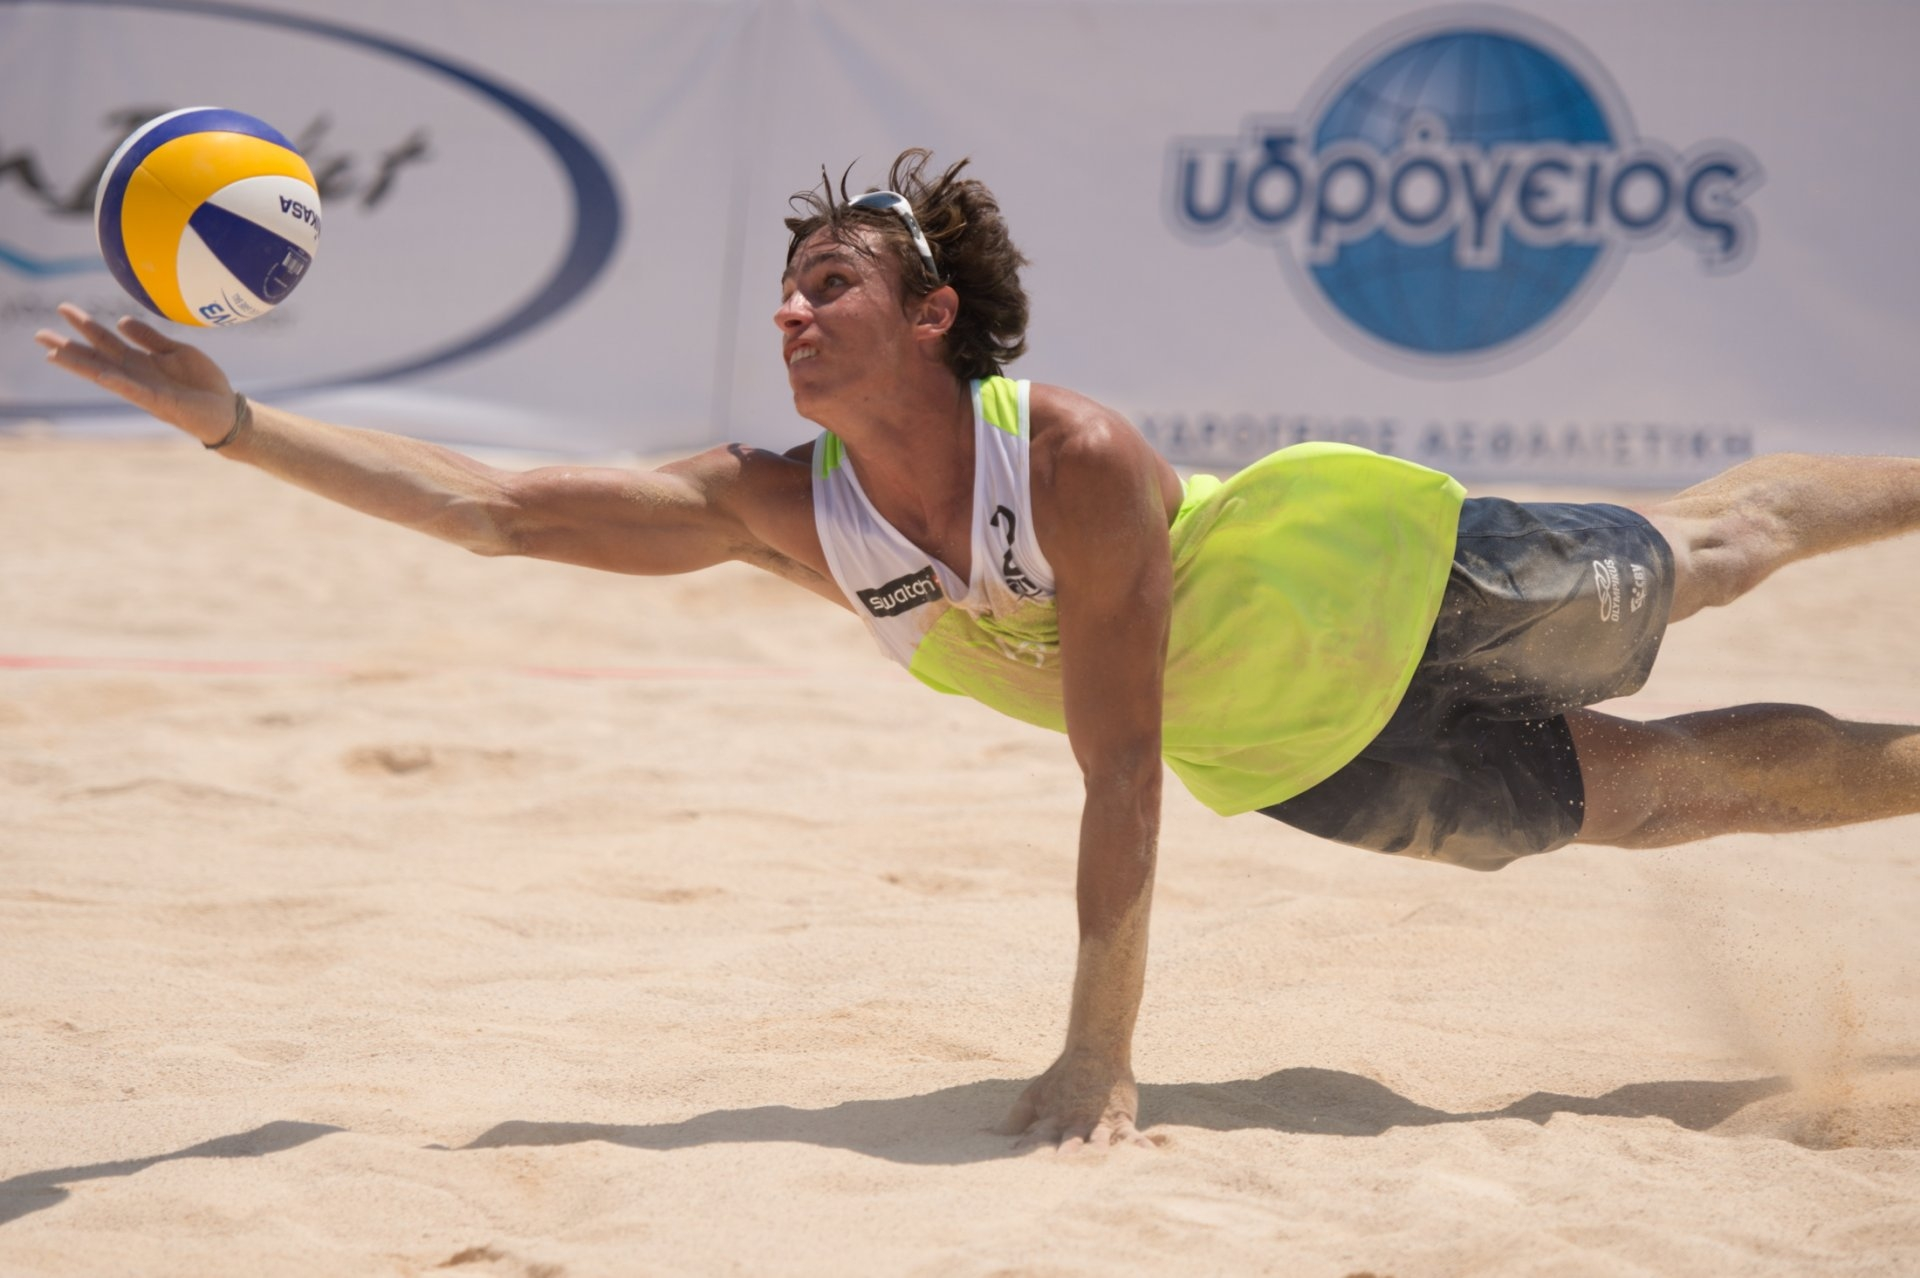 On his playing career, Iago represented Brazil in the 2012 Under-19 World Championships (Photocredit: FIVB)